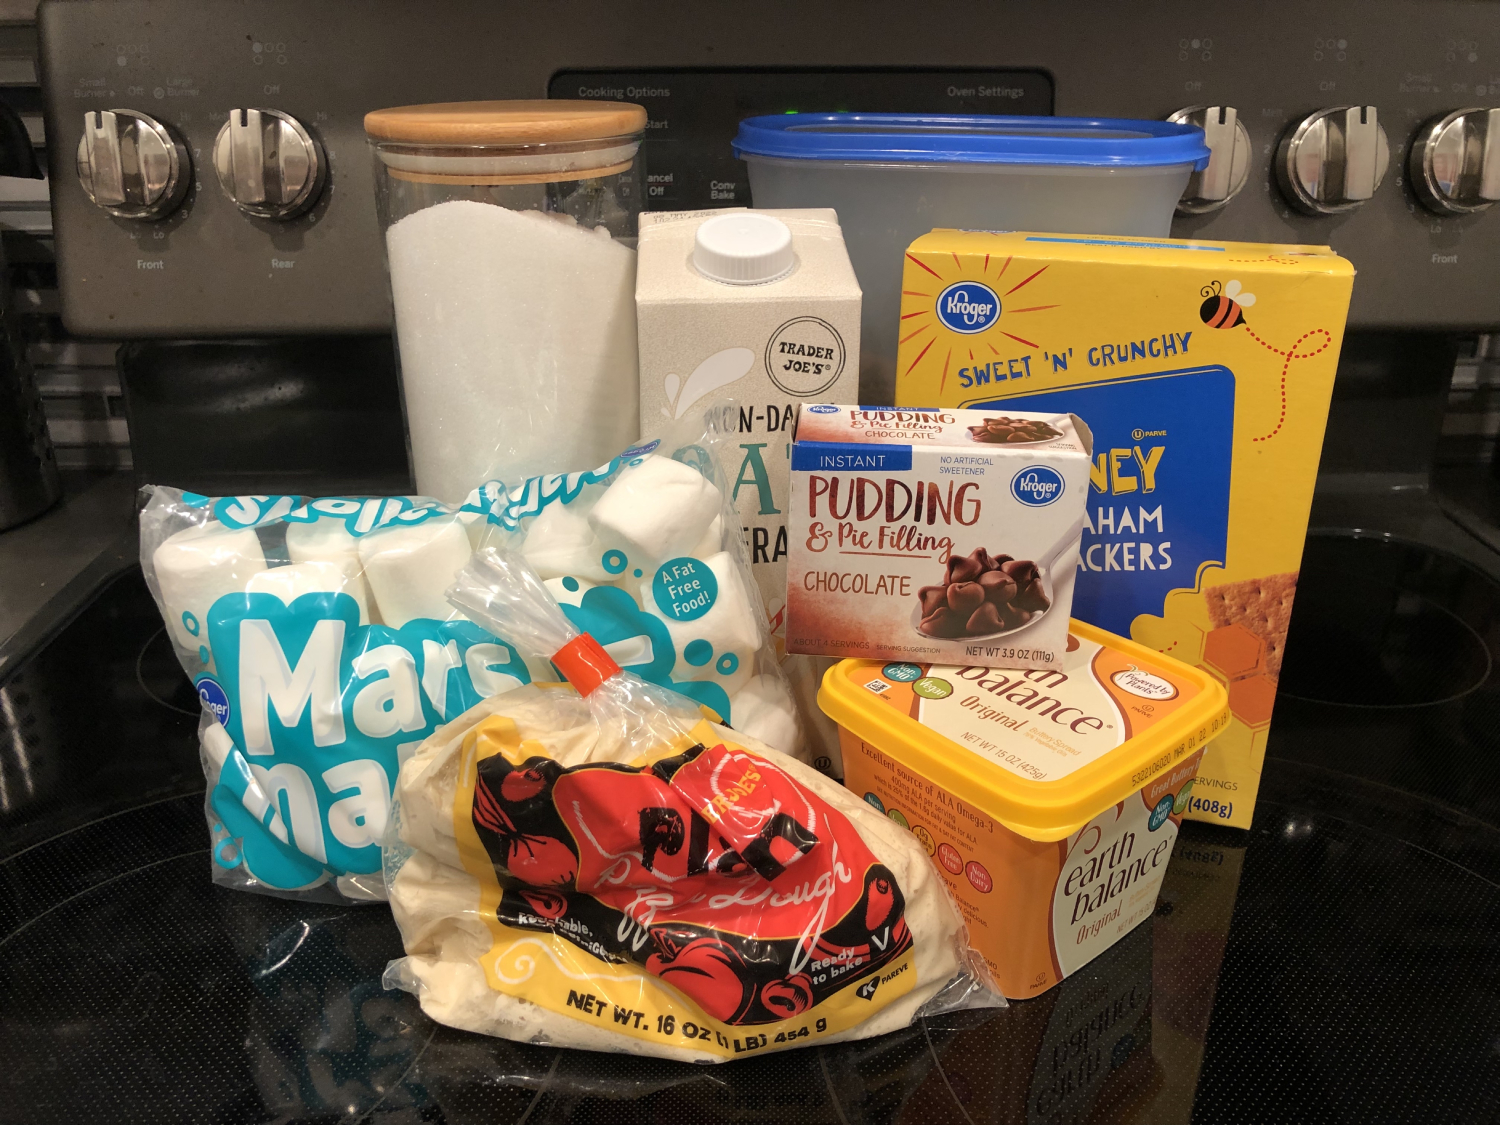 All of the ingredients for smores pizza including graham crackers, marshmallows, milk, butter, chocolate chips